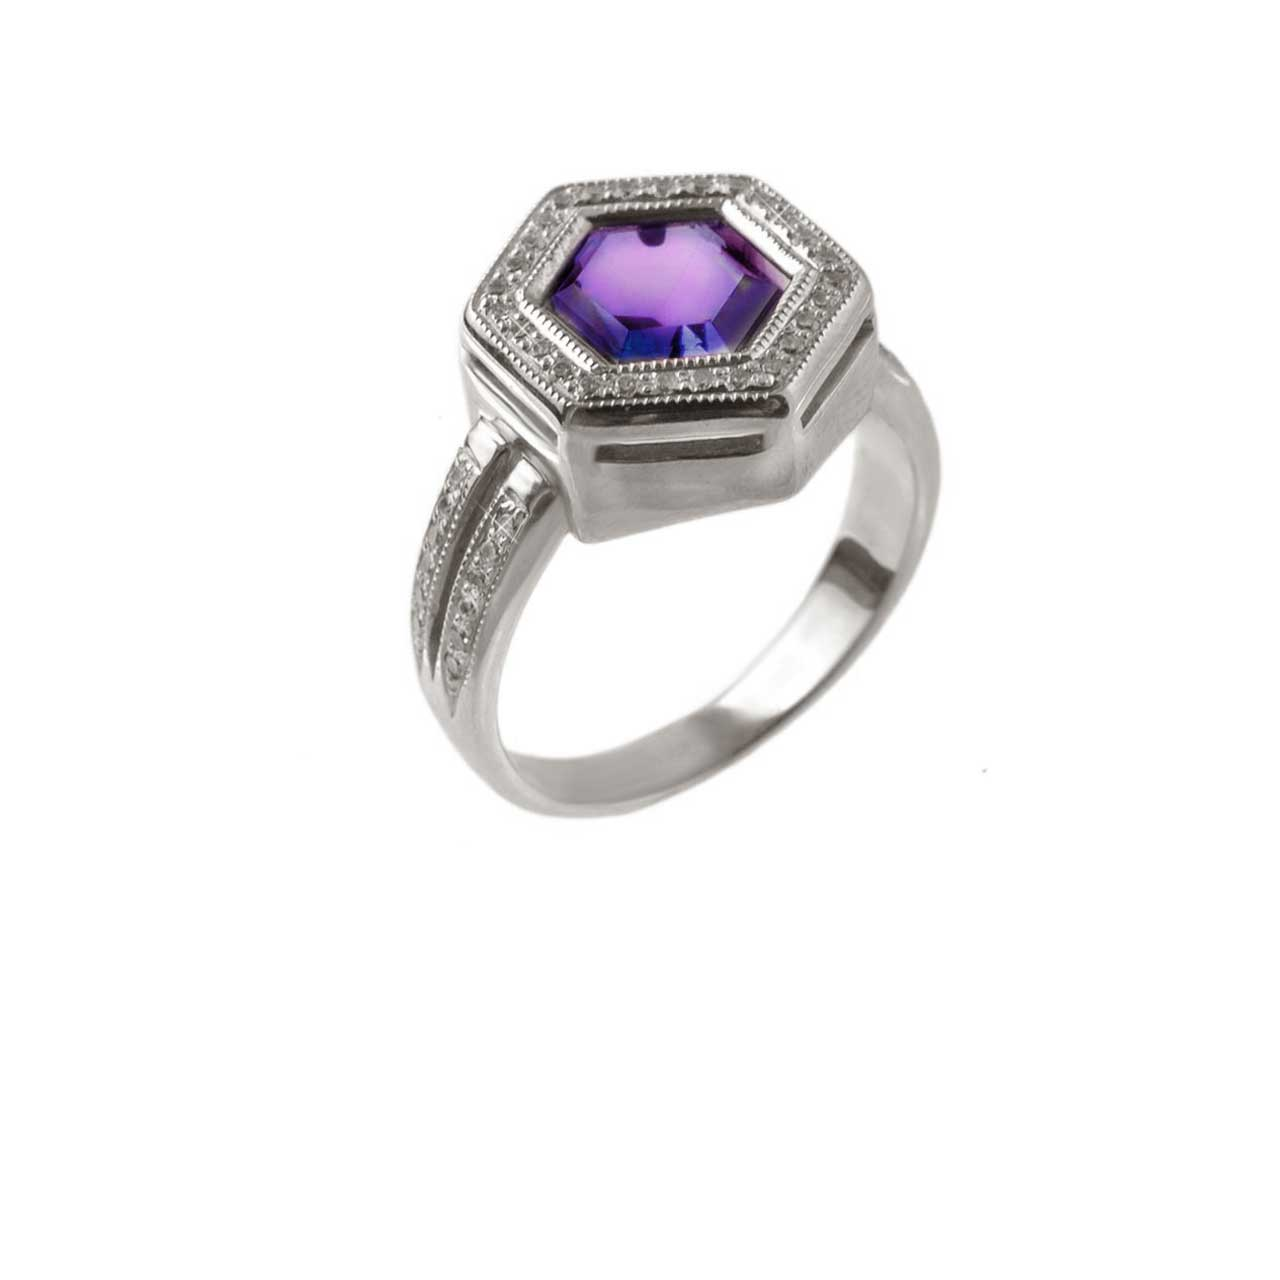 Amethyst gold hexagonal ring 1